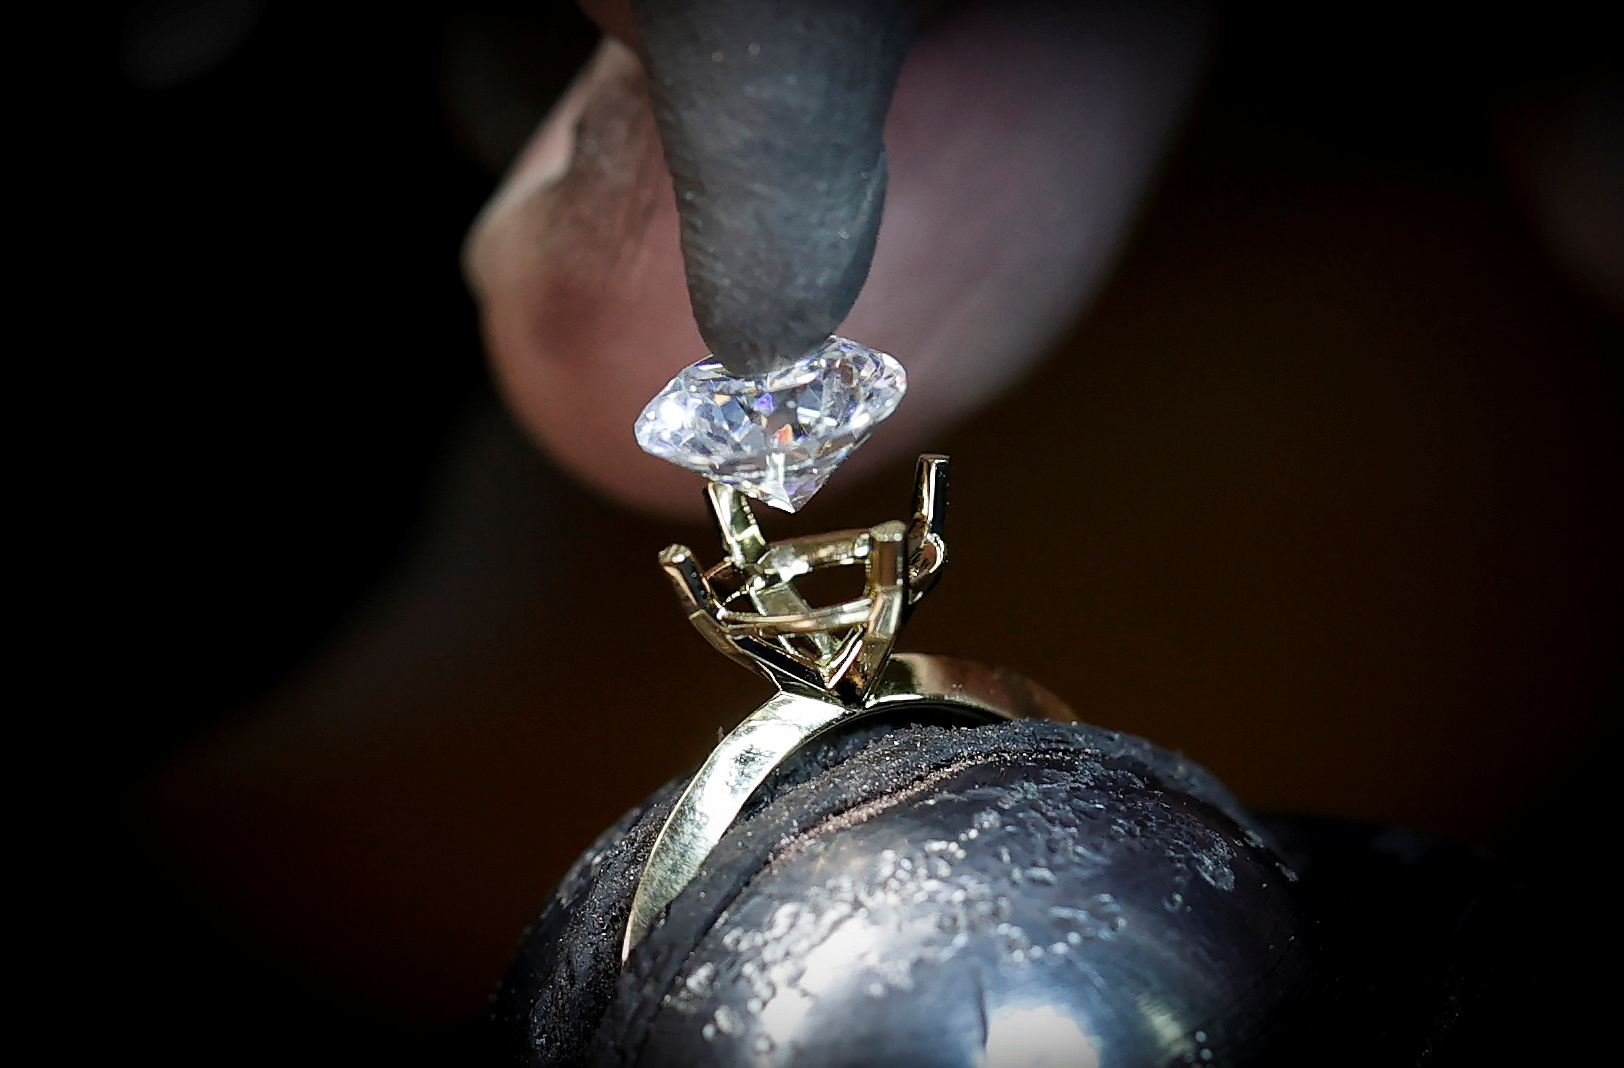 A worker sets an Aether diamond made from captured CO2 into a ring at the RFG Manufacturing Riviera jewelry design facility in Manhattan in New York City, New York, U.S., September 30, 2021. Picture taken September 30, 2021.  REUTERS Mike Segar